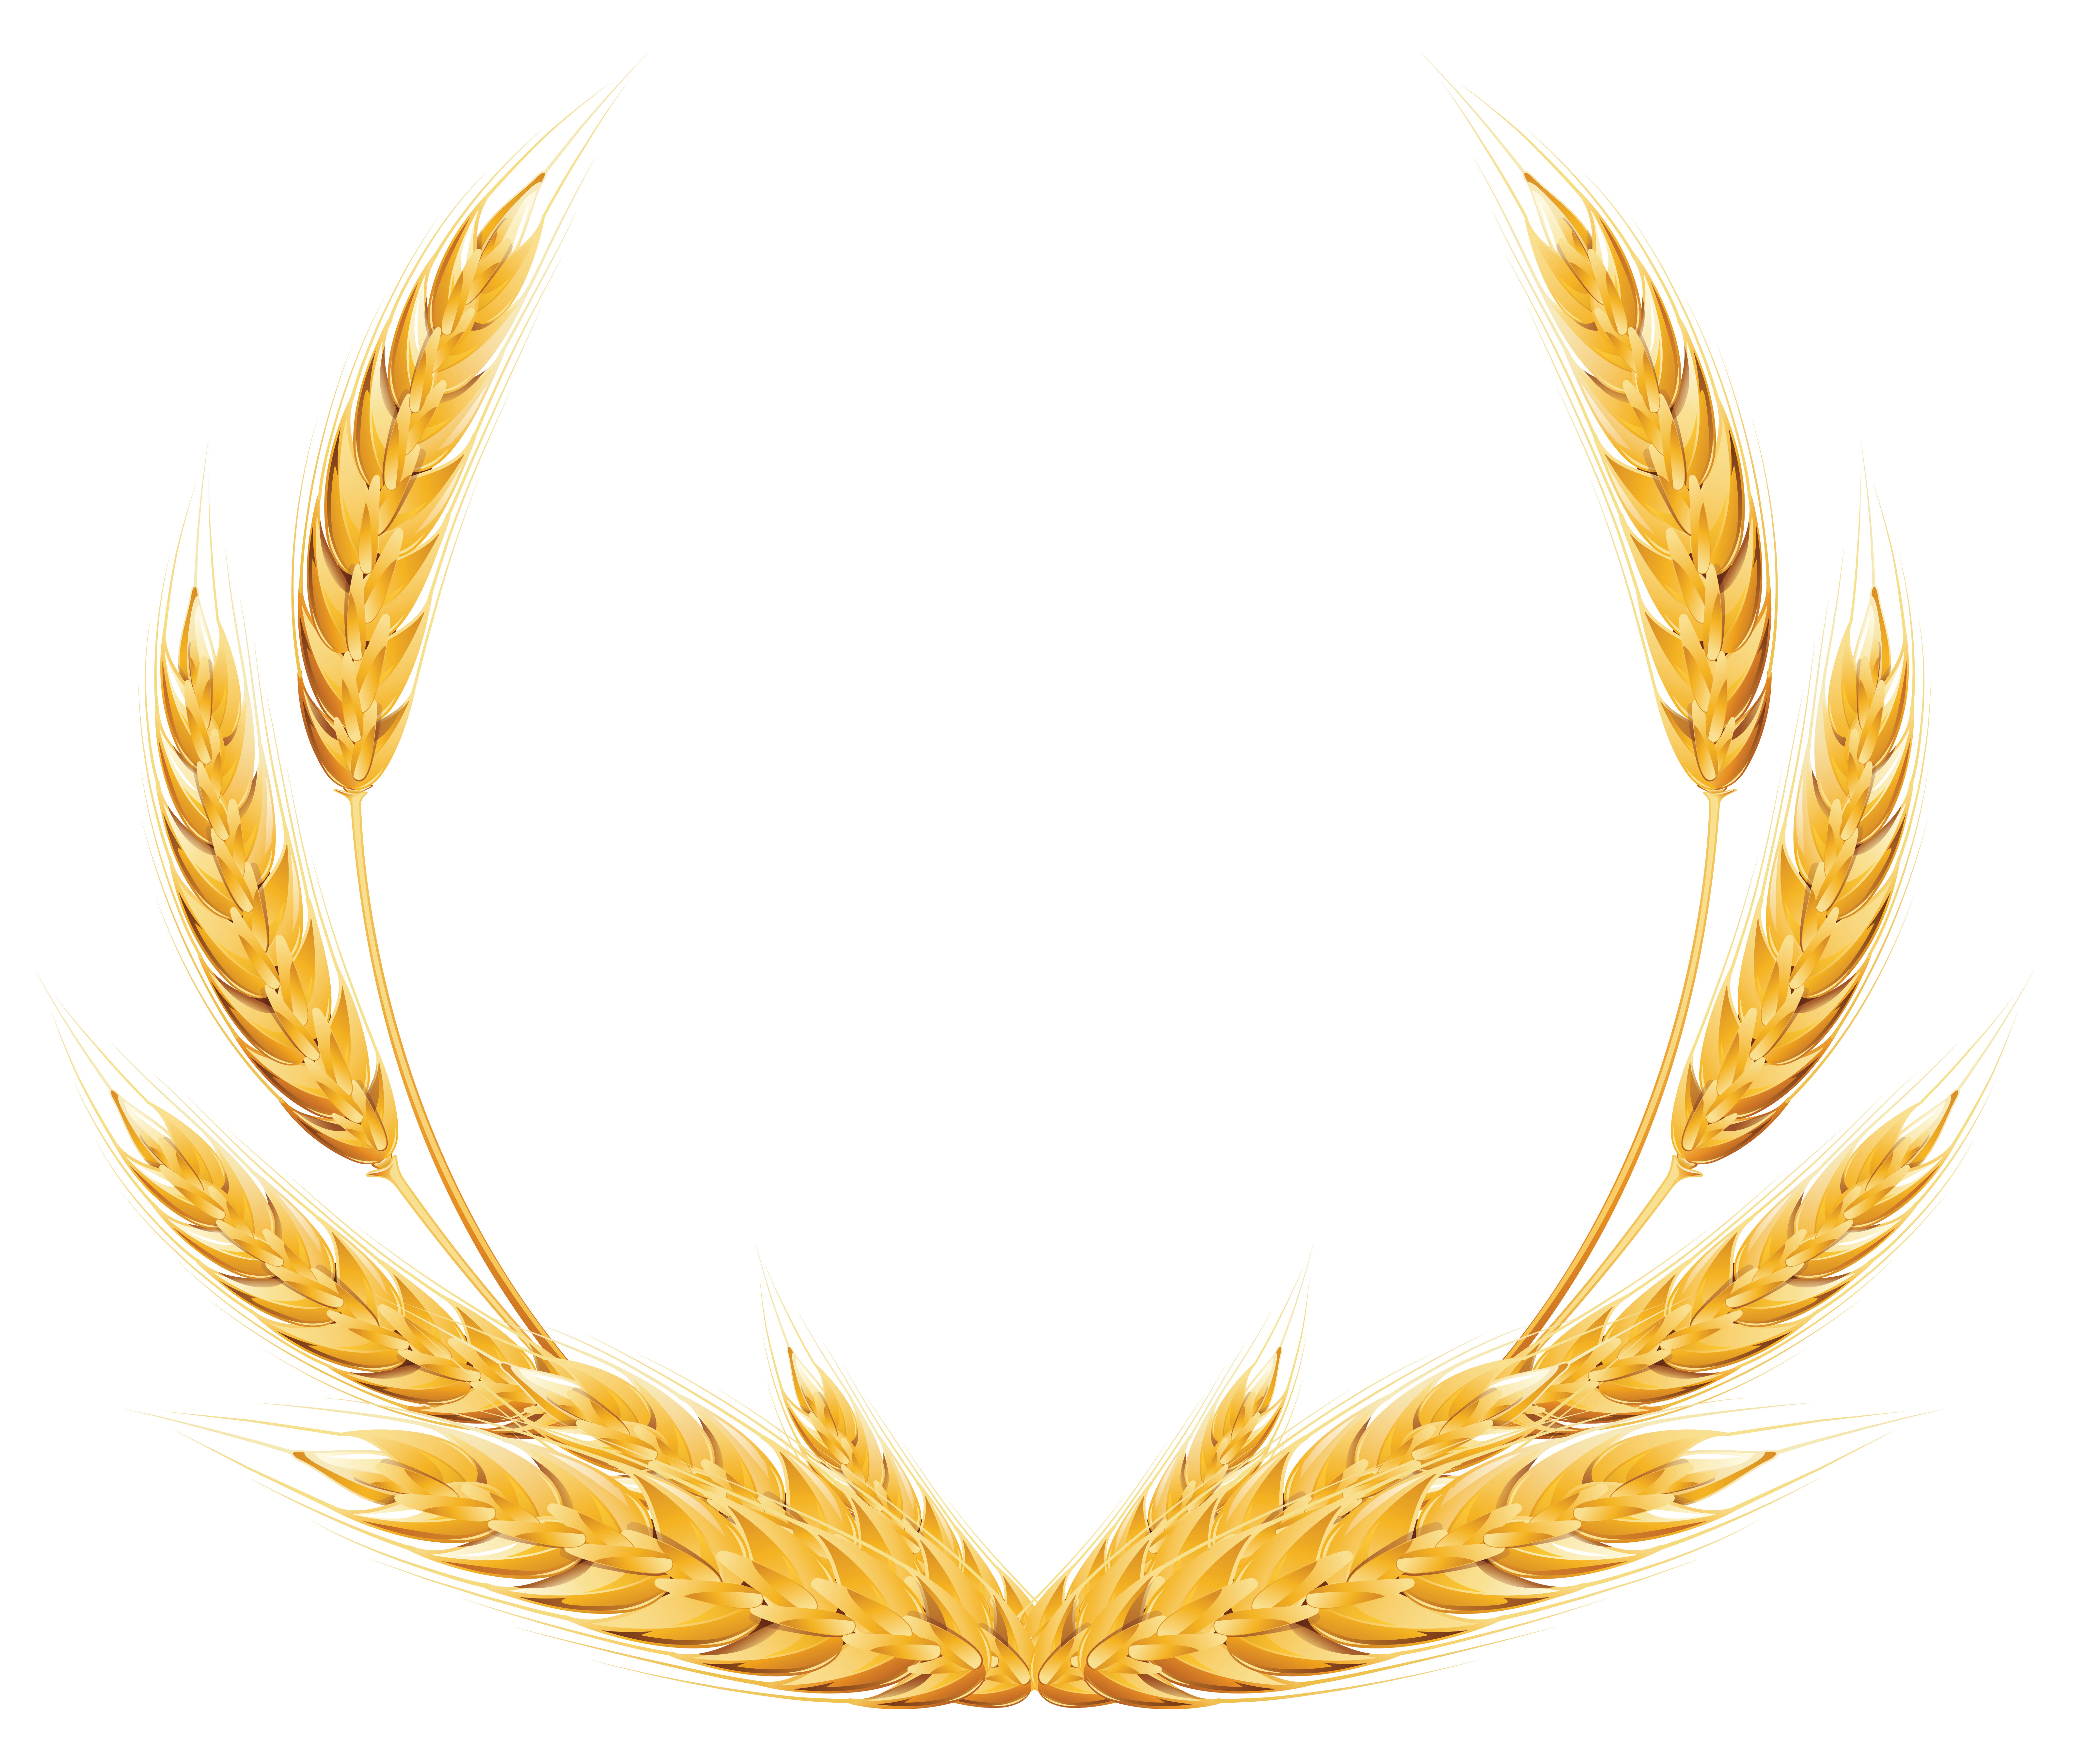 Wheat clipart wheat head. Decoration png image gallery